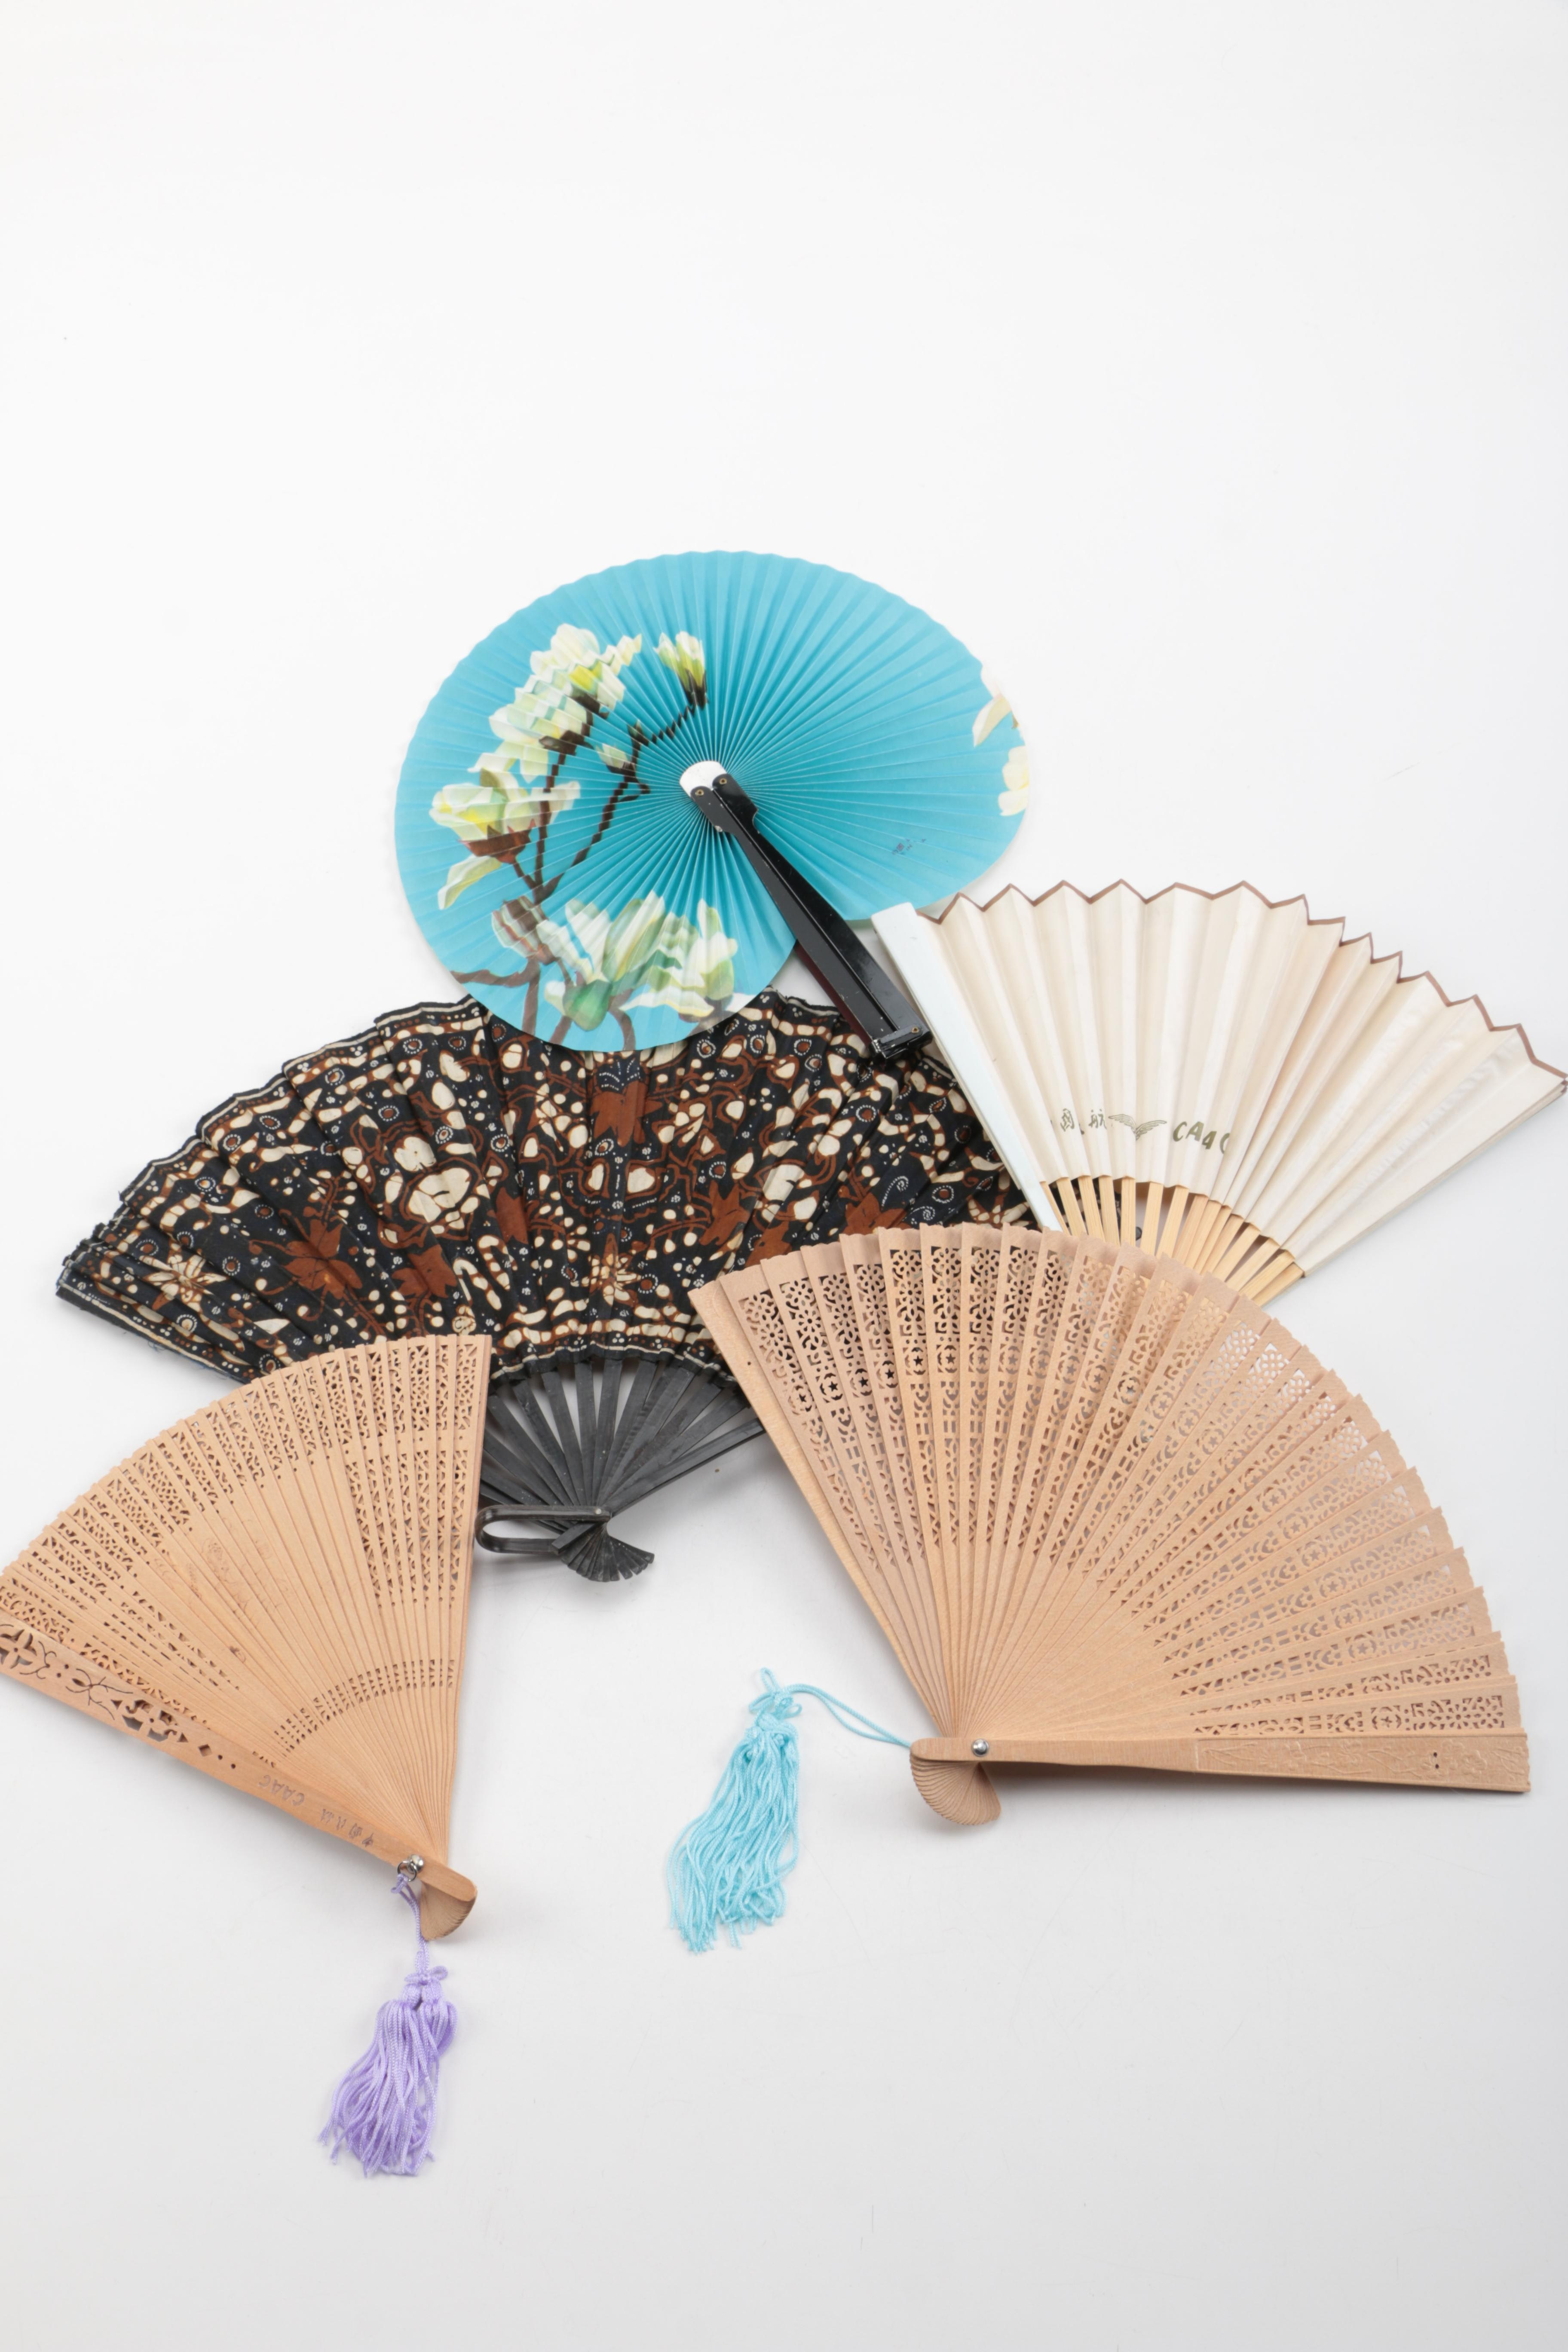 Five Wood and Cloth or Paper Hand Fans